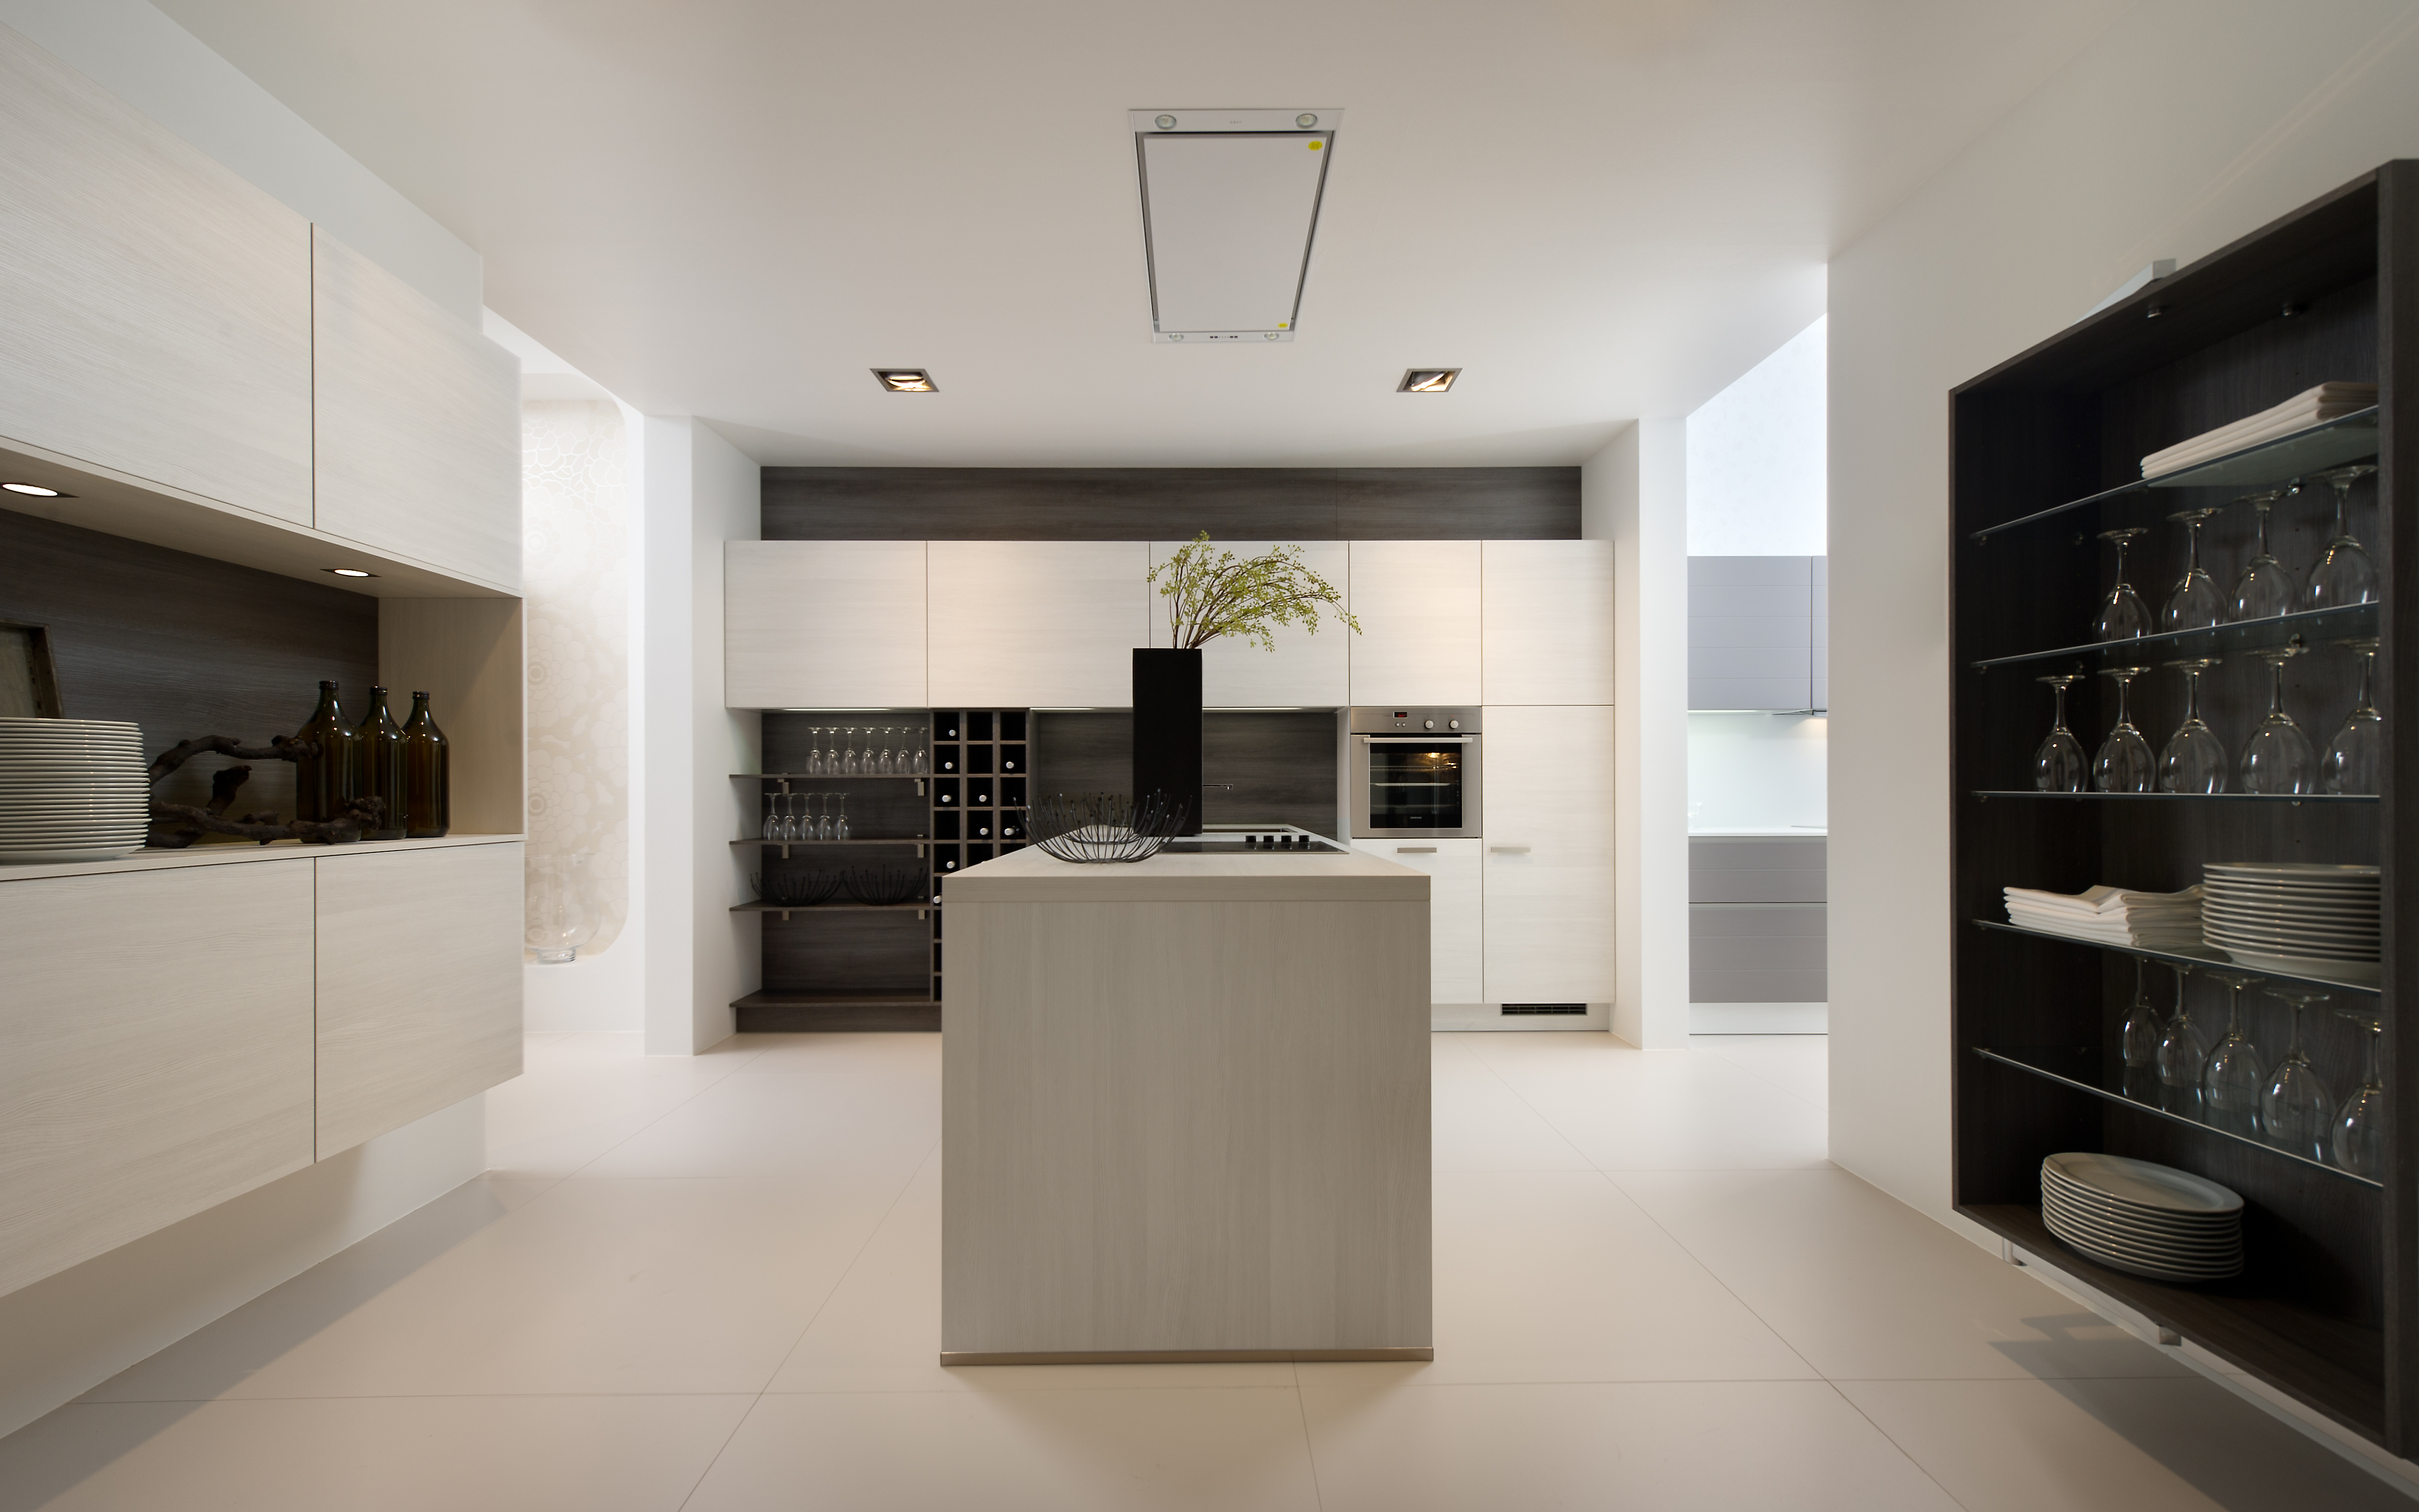 About us linear kitchen designs for Kitchen design qualifications uk